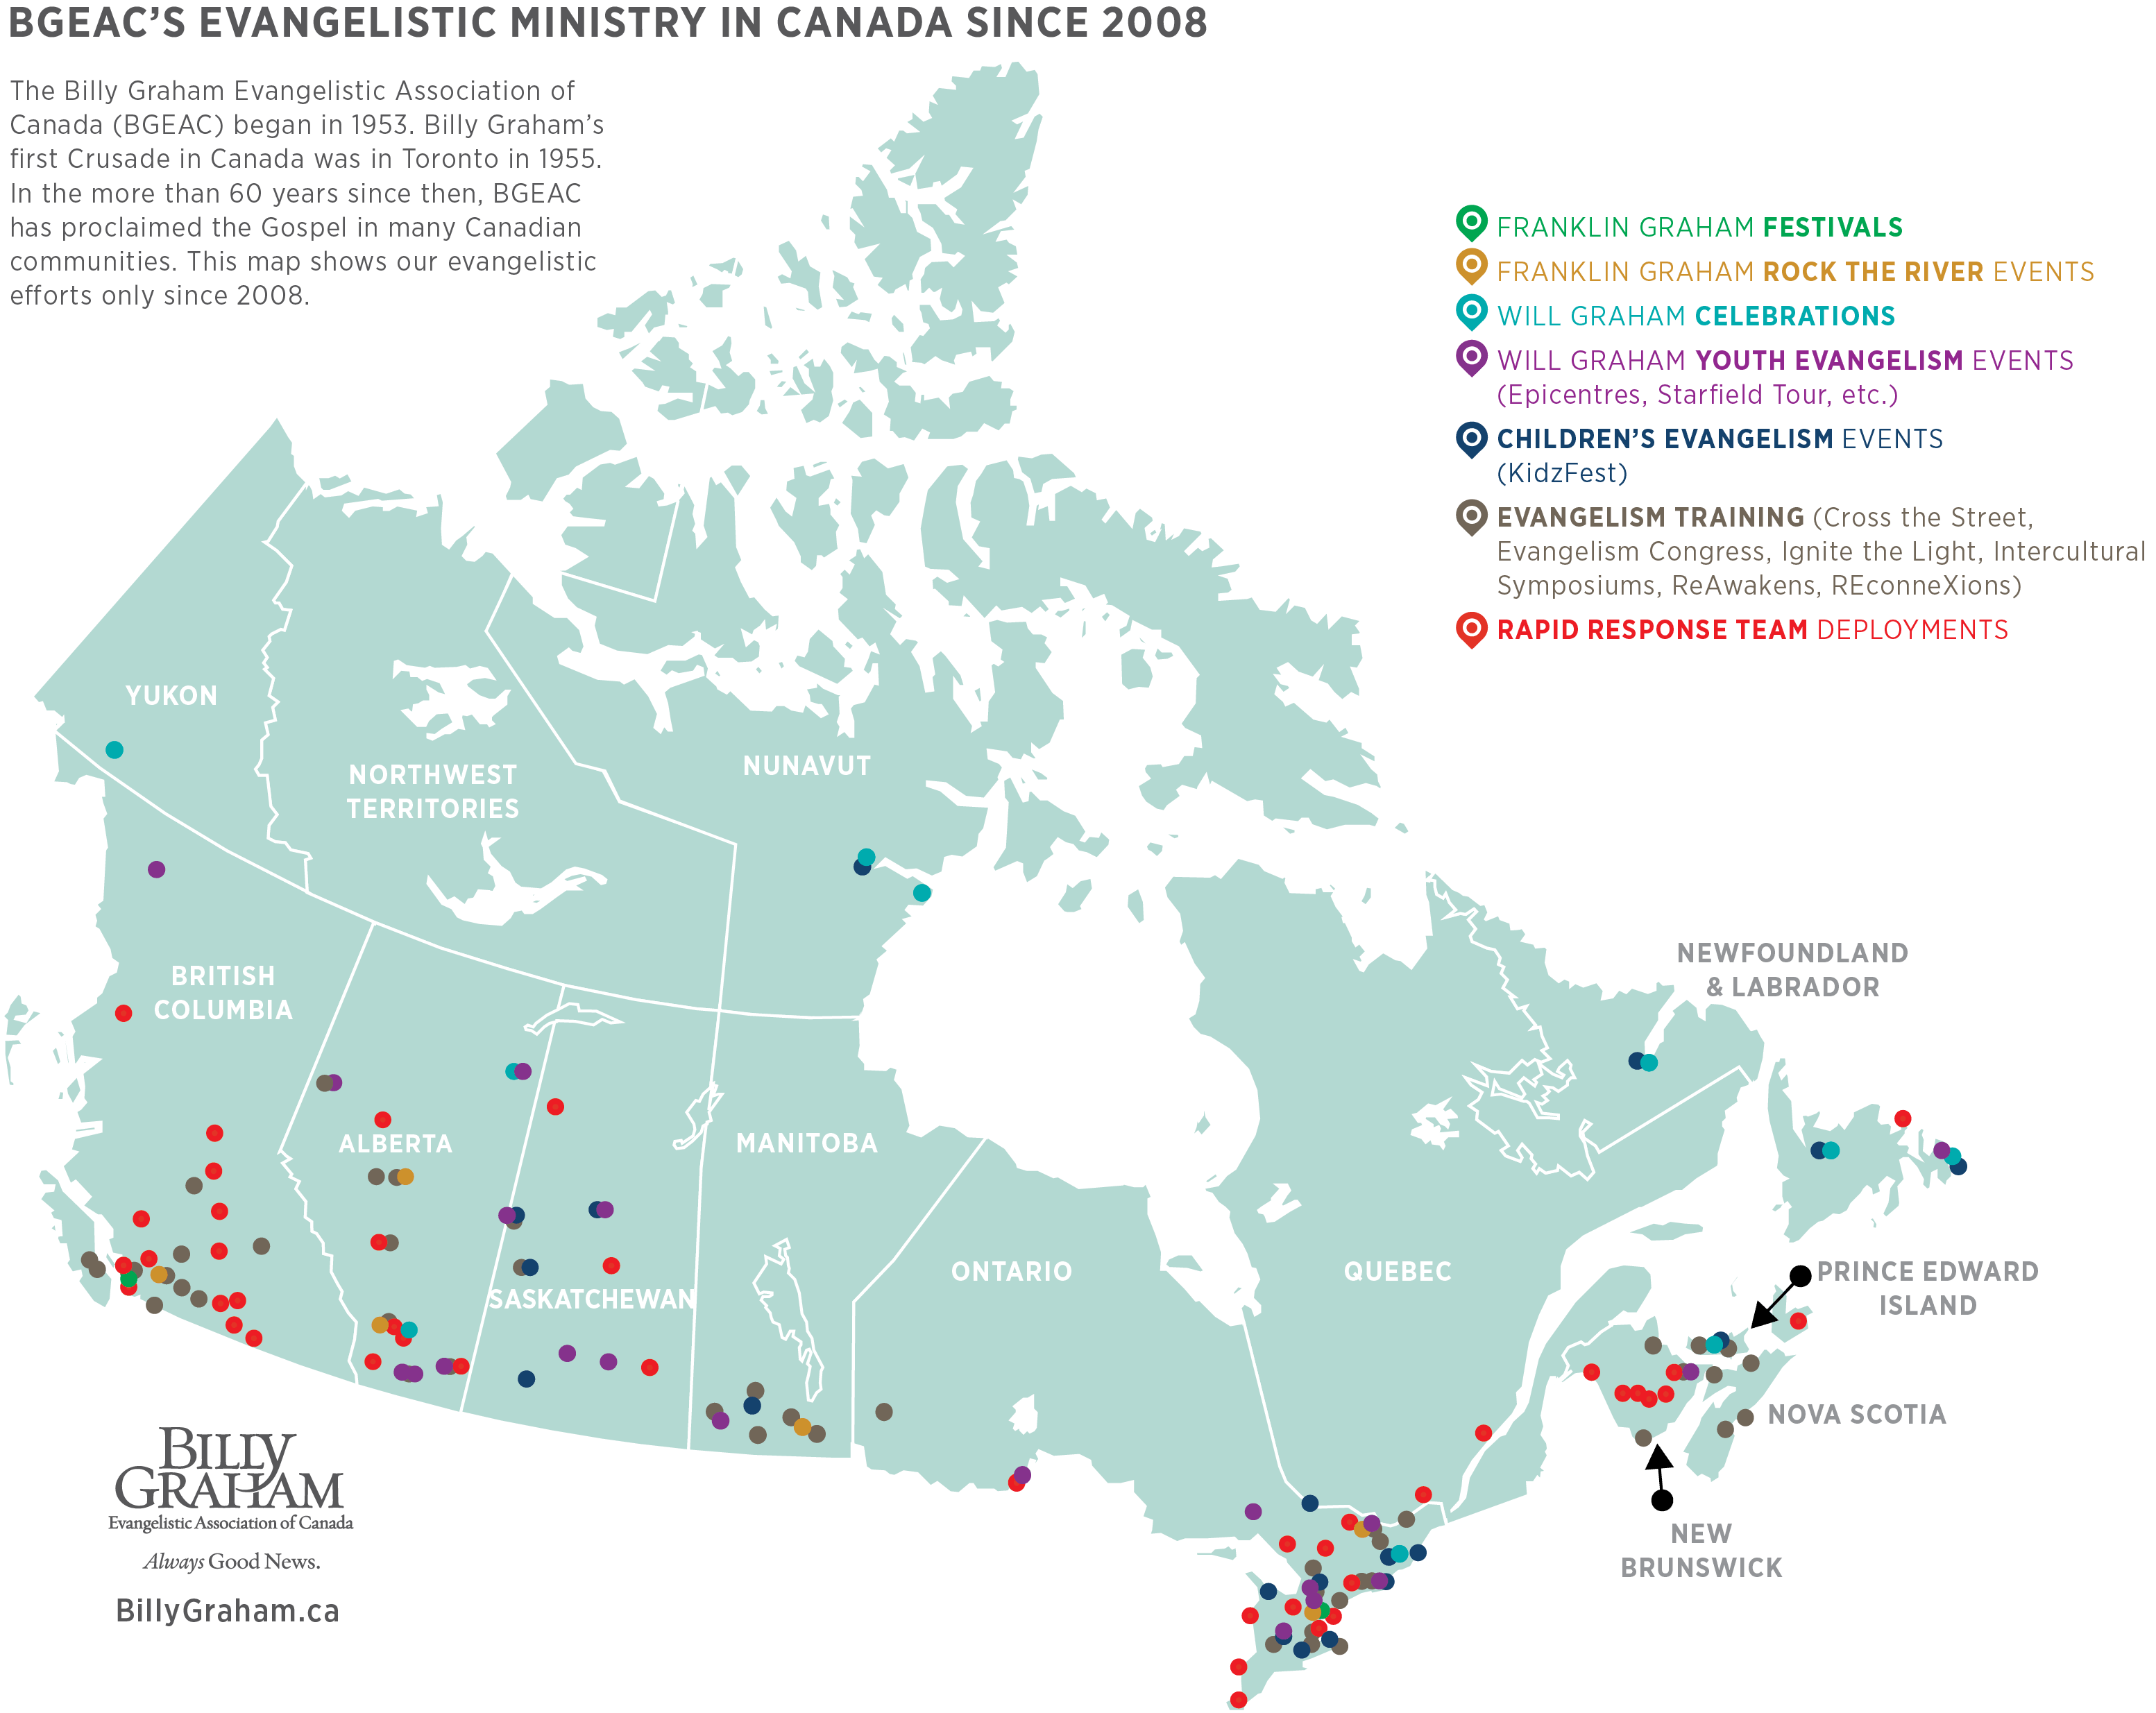 Canadian Ministry Map - The Billy Graham Evangelistic ... on blank canada map, canada physical map, european map, french map, uk map, prince edward island map, costa rican map, serb map, lakes in canada map, washington map, united states map, vancouver canada map, alaska map, british columbia map, p.e.i map, chinese map, banff canada map, canada provinces map, canda map, american map,